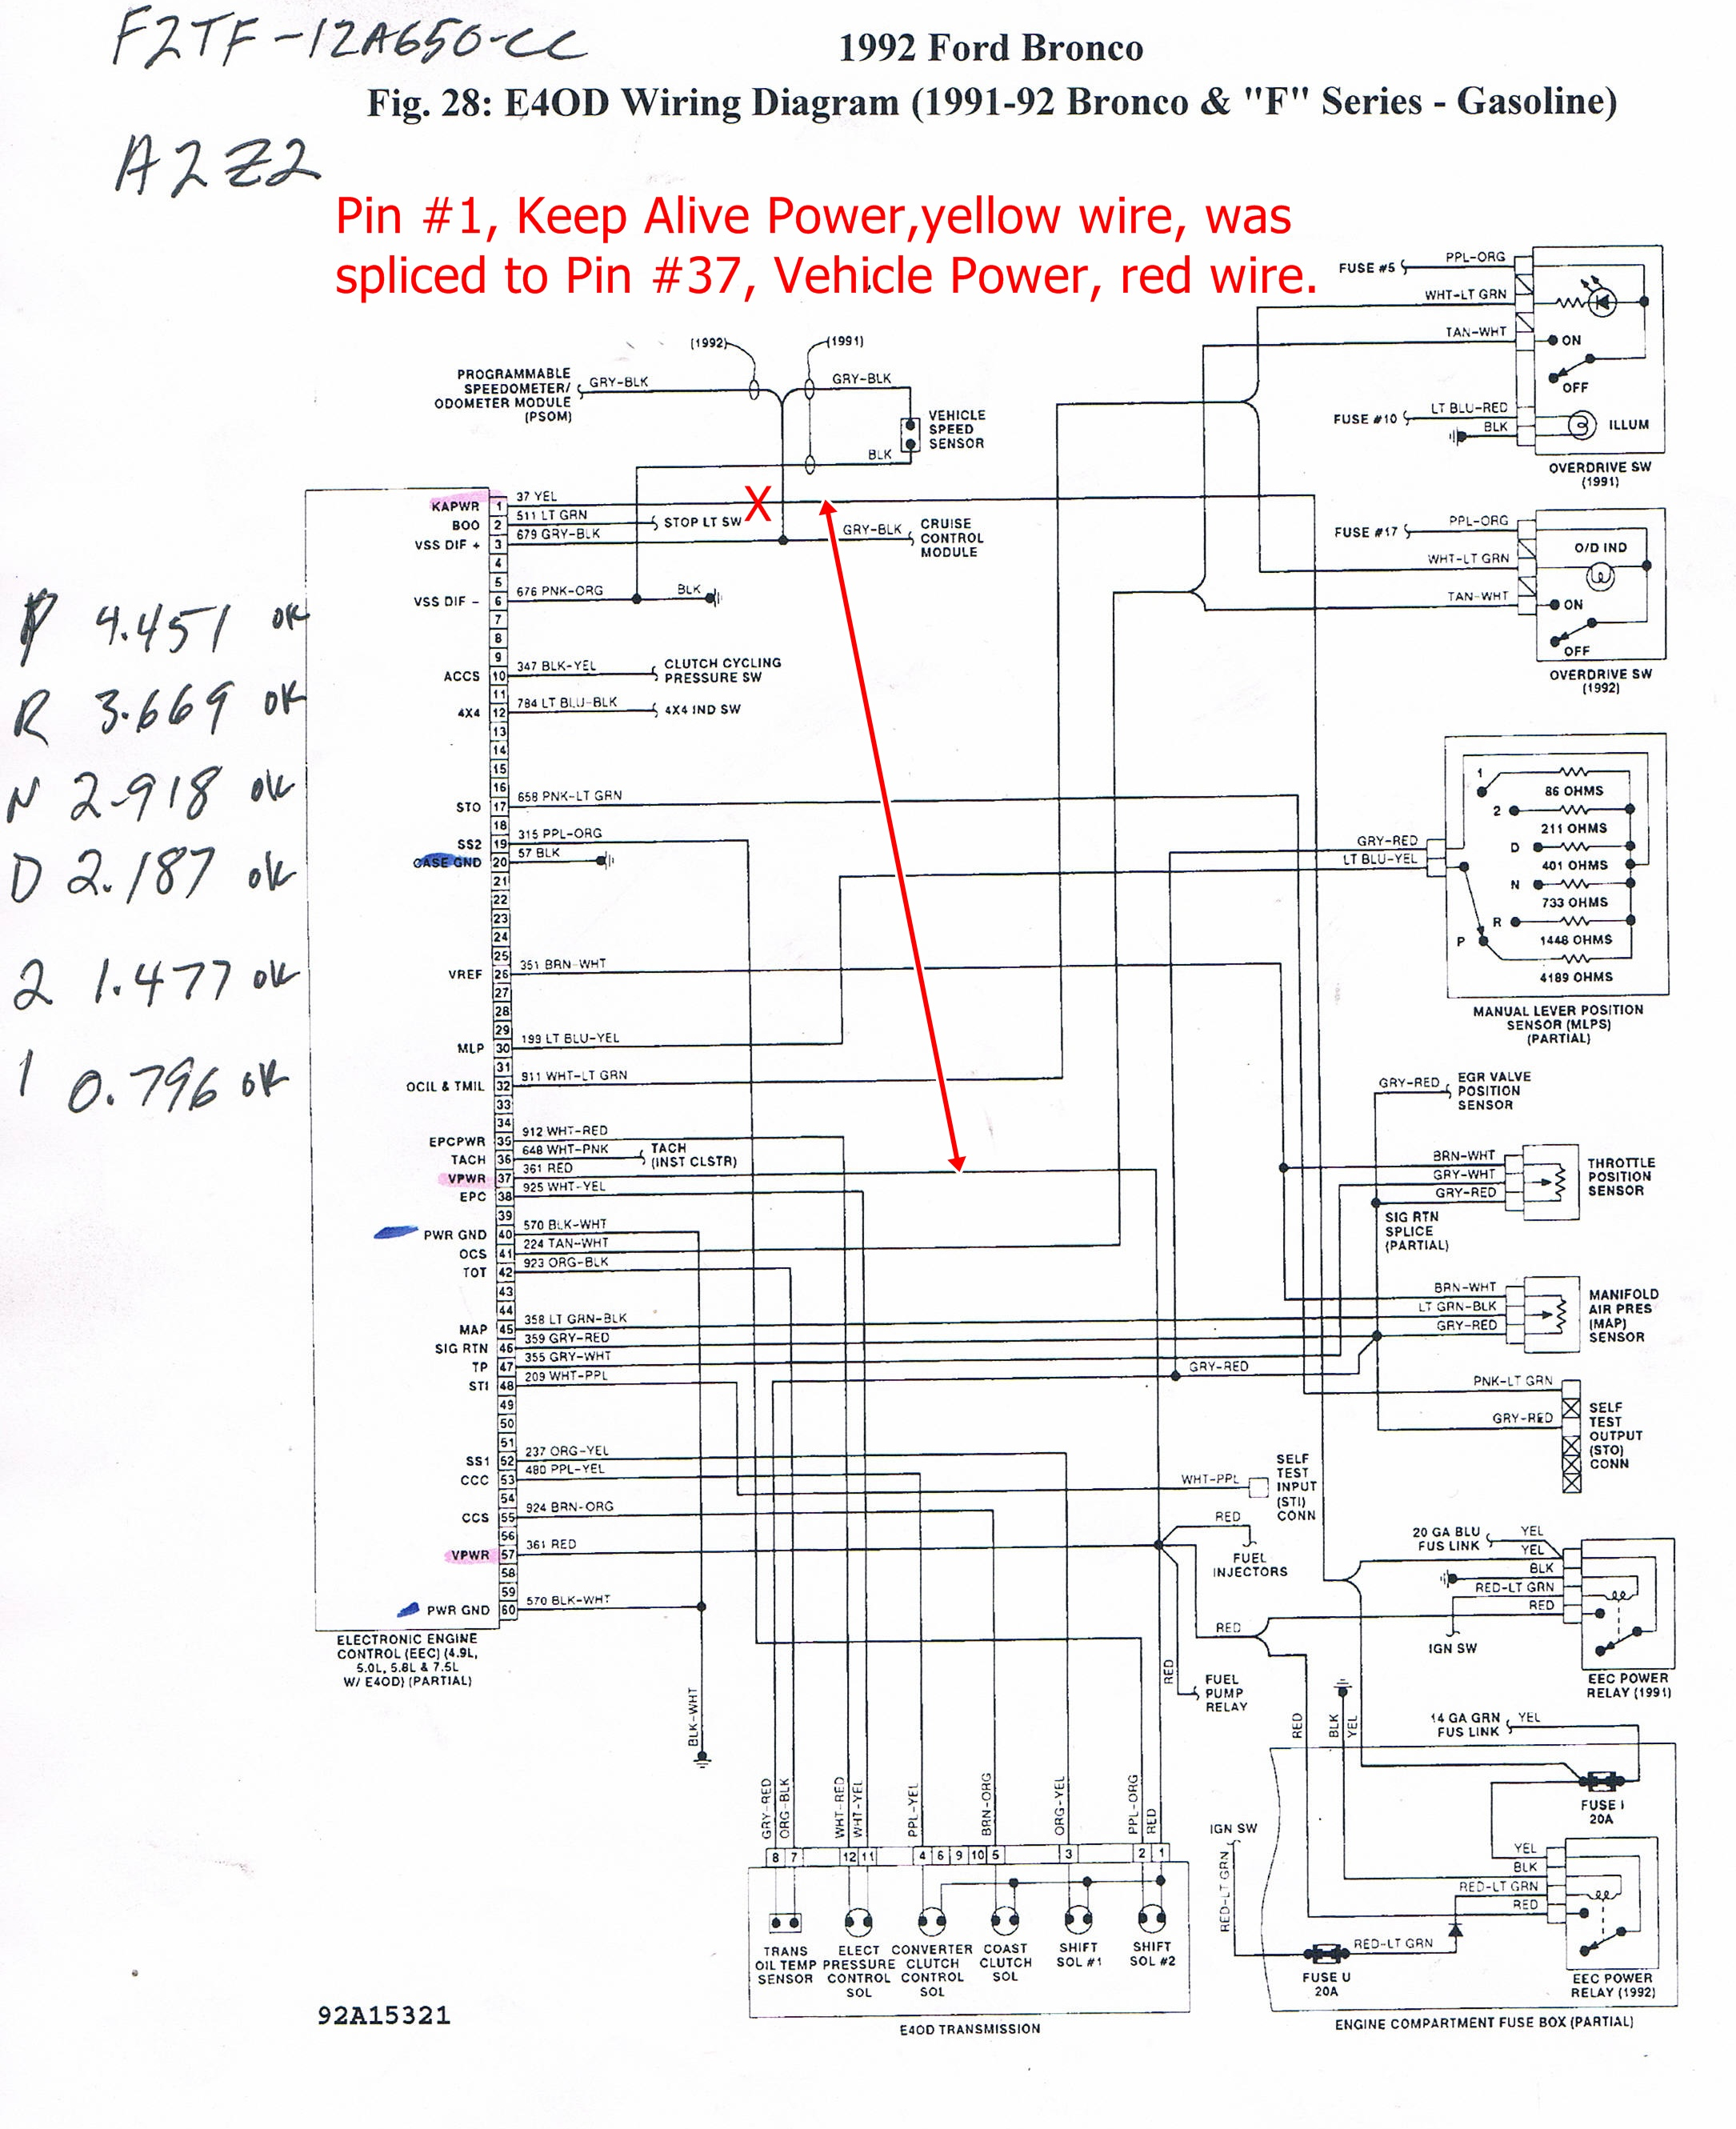 wire diagram 5r55w transmission wire harness 5r55w diagram \u2022 wiring diagrams e40d transmission wiring diagram at n-0.co